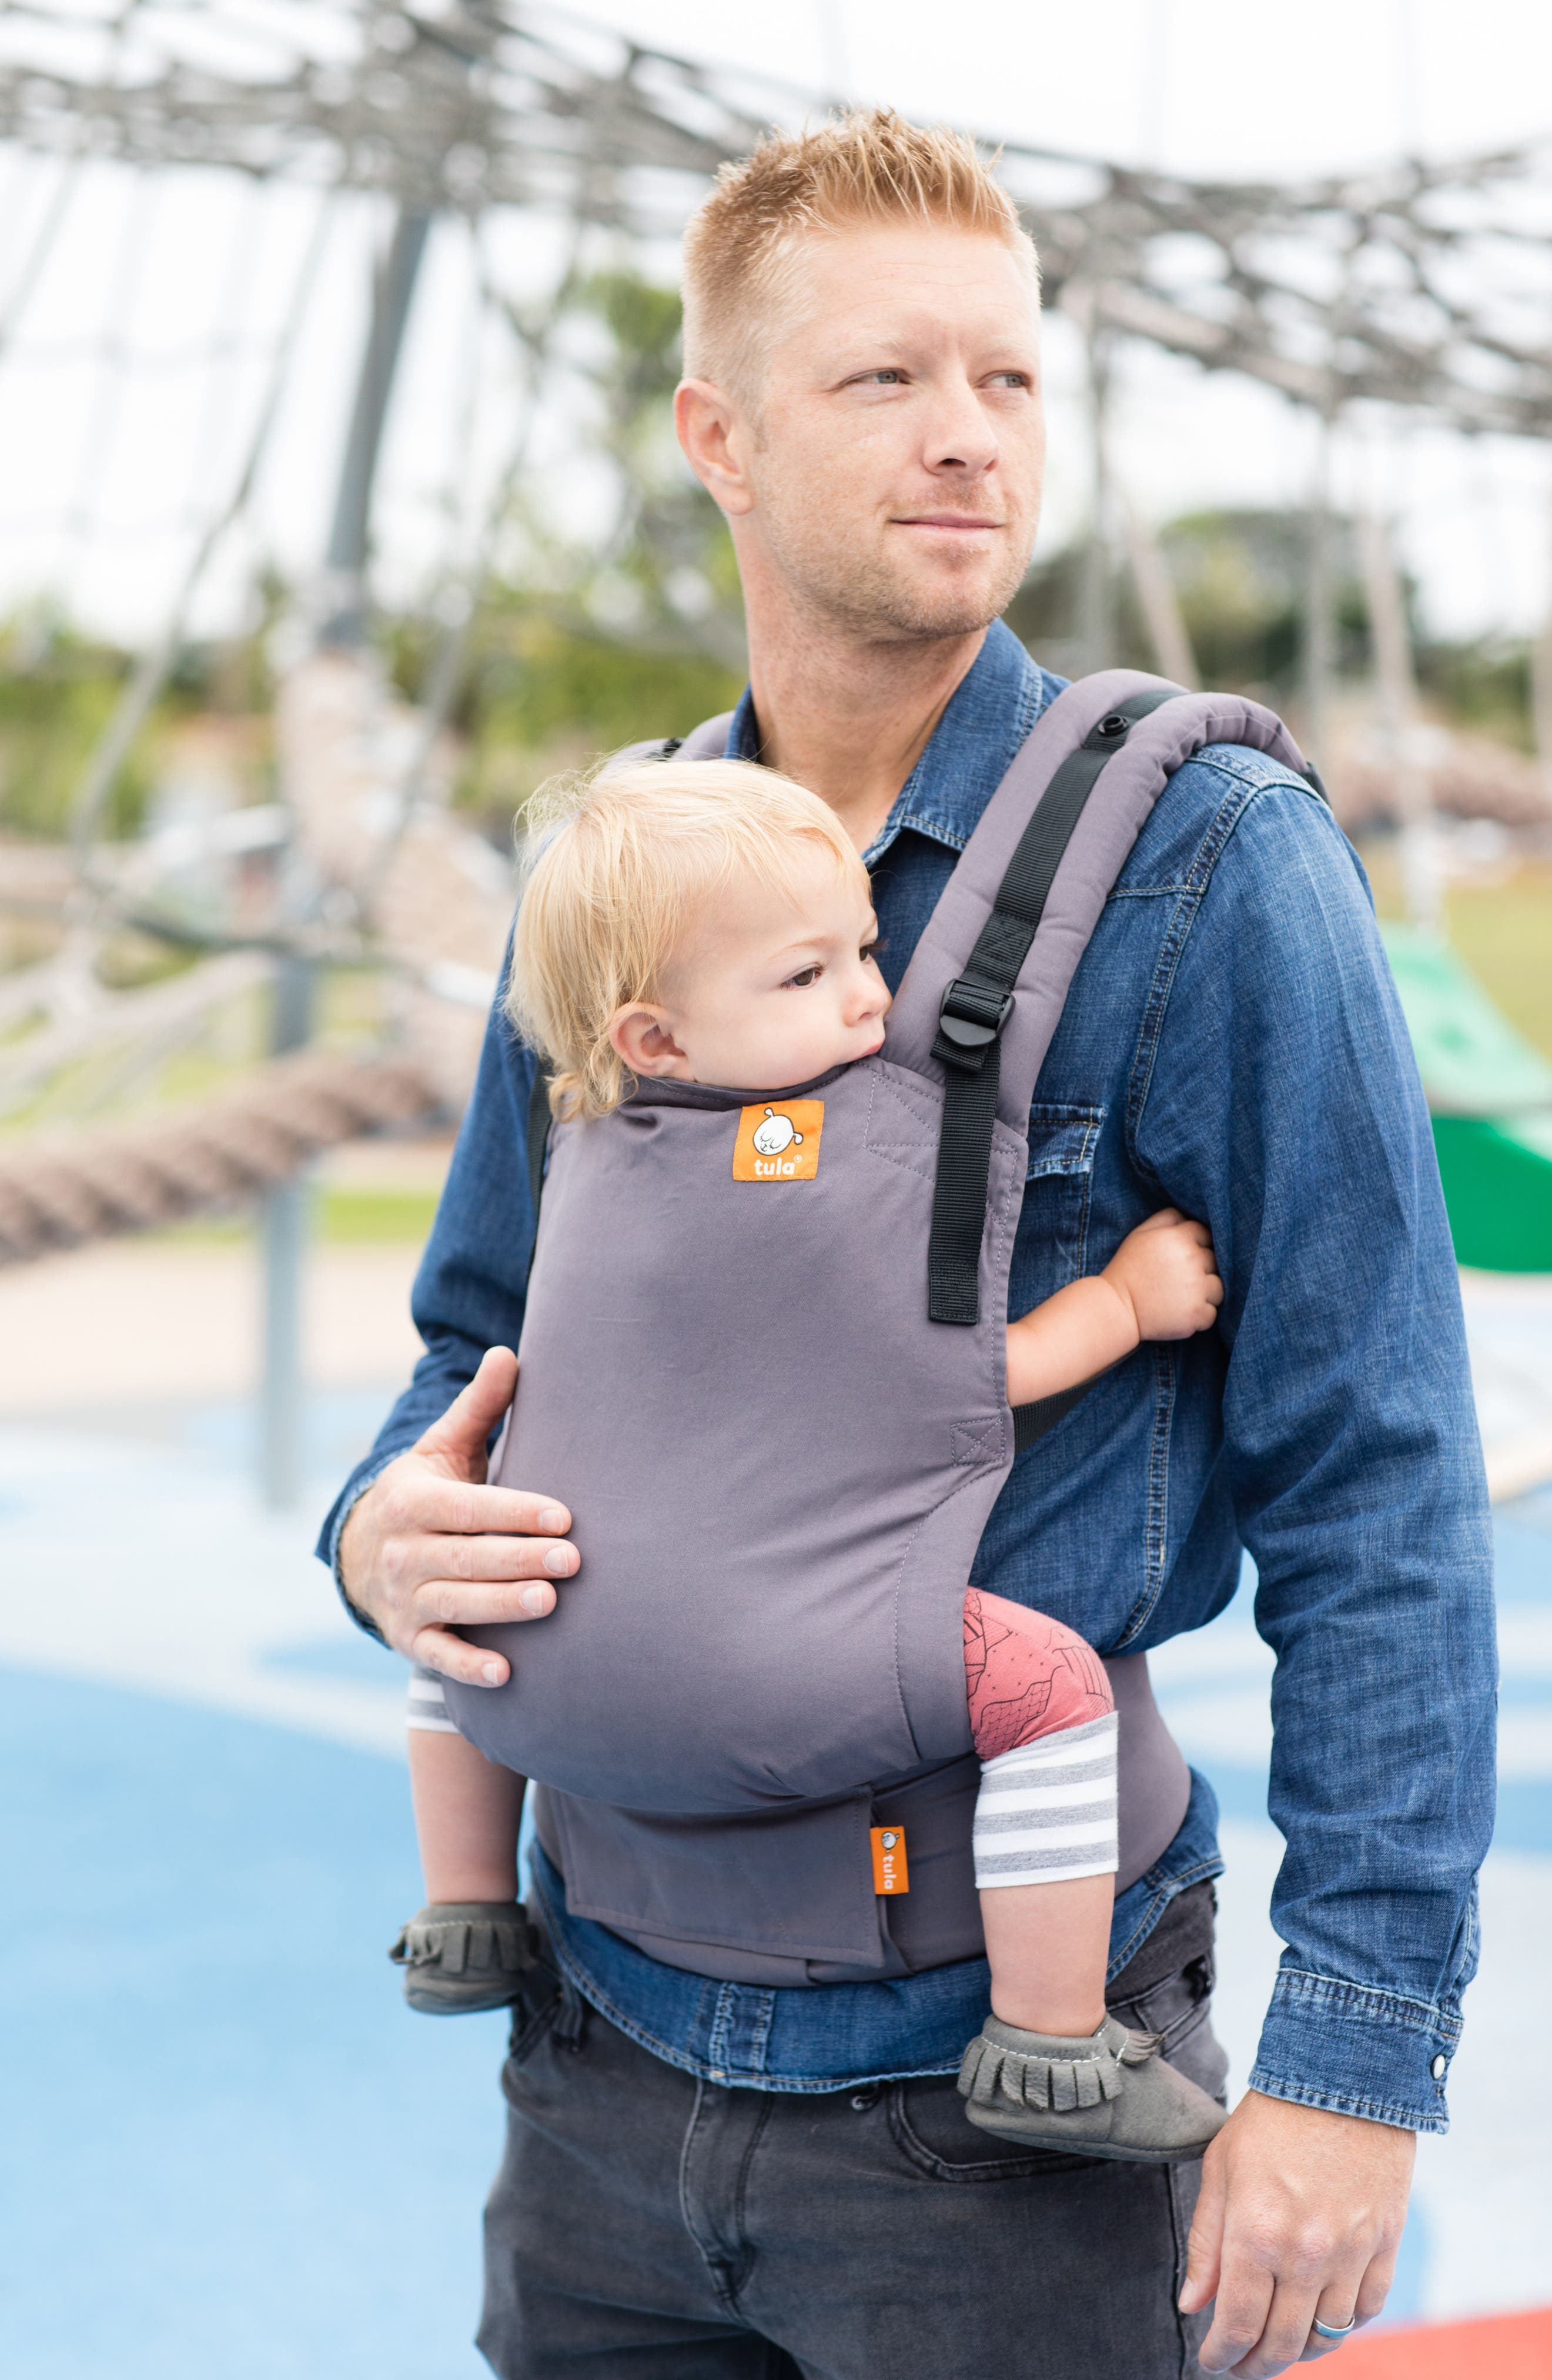 Stormy Free-to-Grow Baby Carrier,                             Alternate thumbnail 8, color,                             STORMY